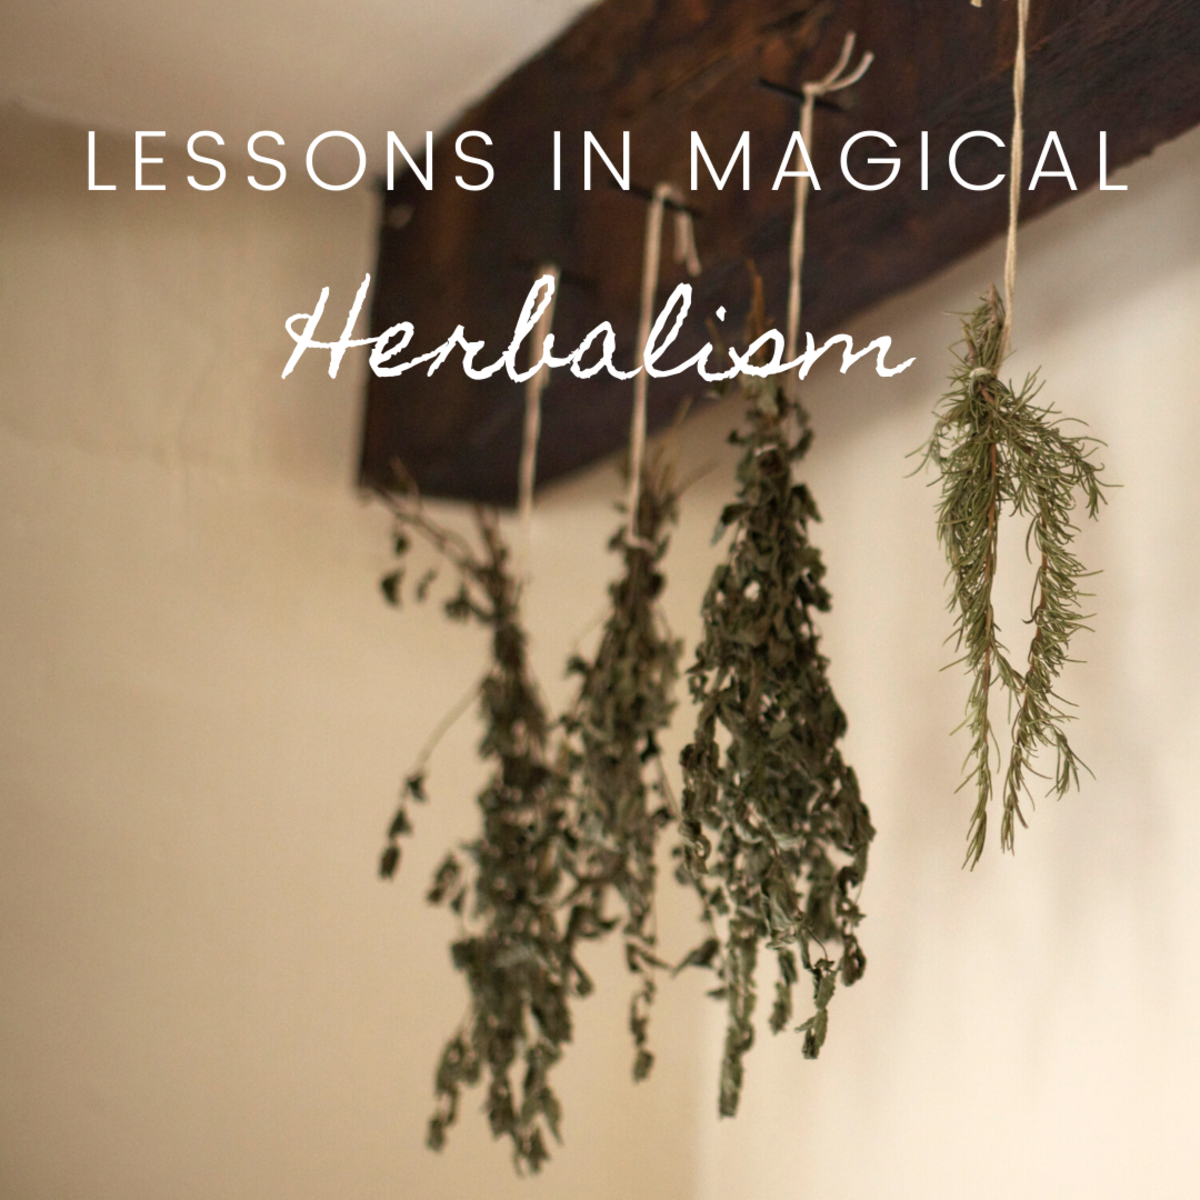 Lessons in Magical Herbalism